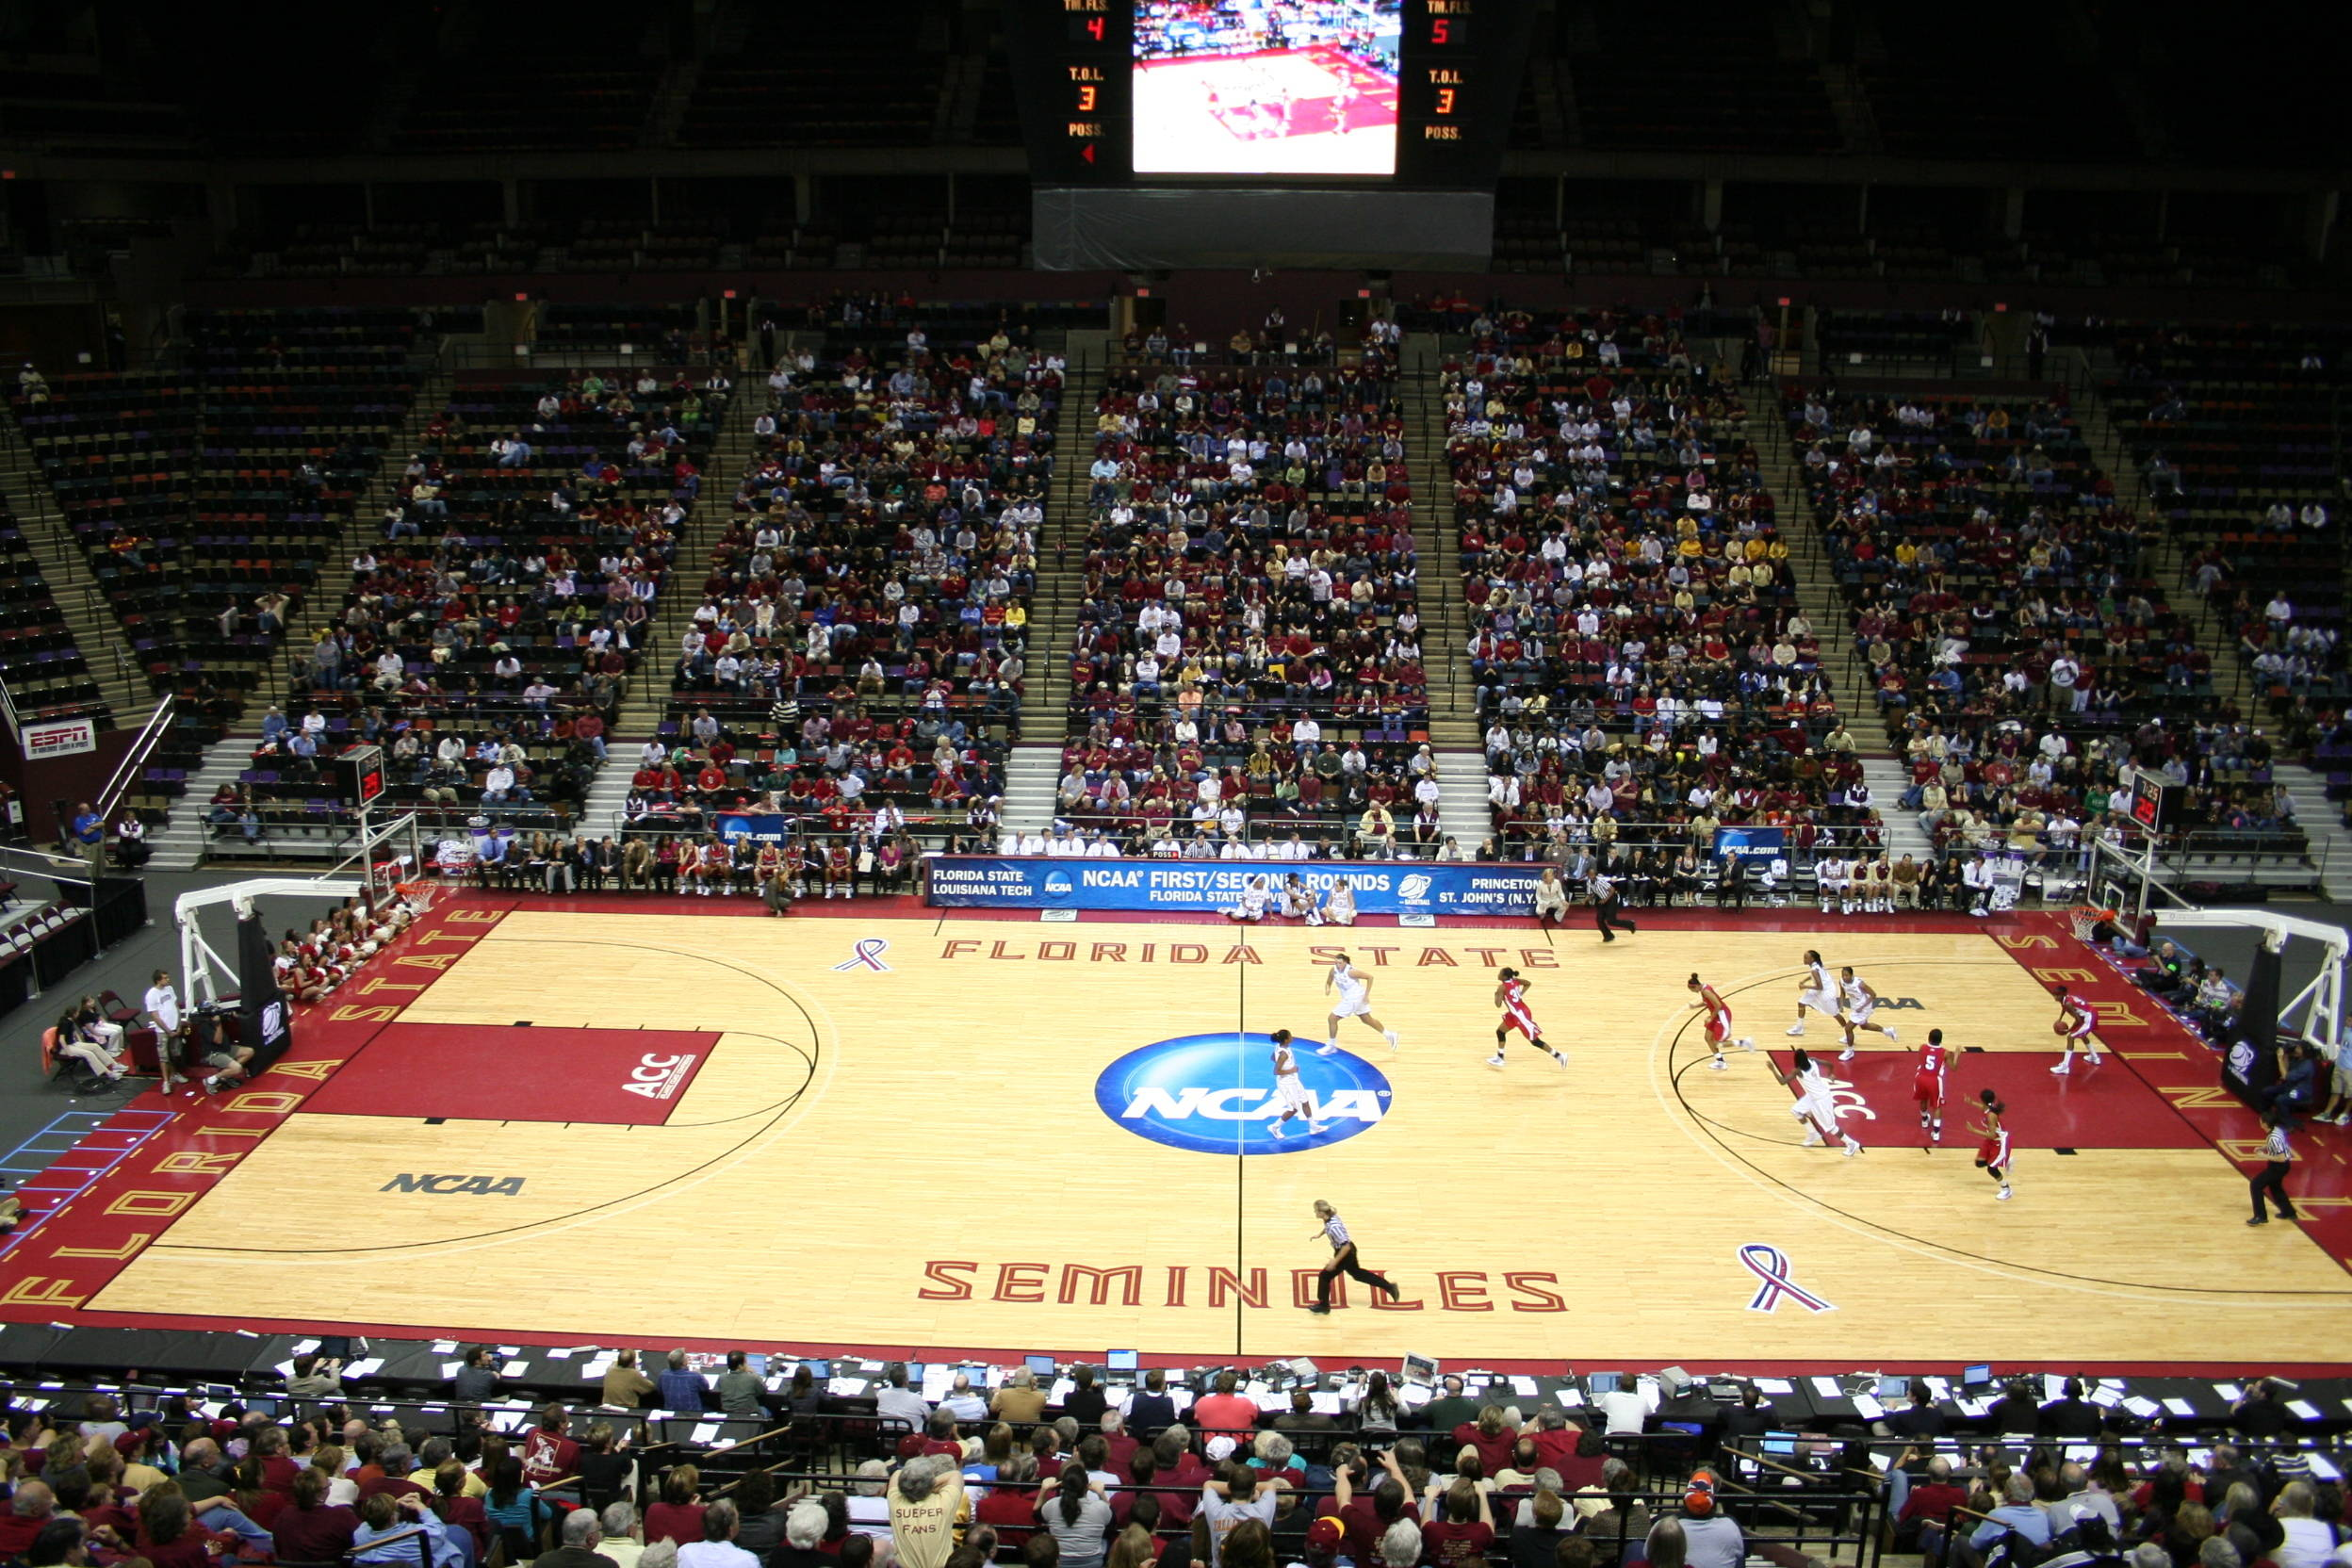 August 26 ... One of the top basketball programs in the country, Florida state served as a host site for the 2010 NCAA Tournament this past March. The Seminoles advanced all the way to the Elite Eight last season.